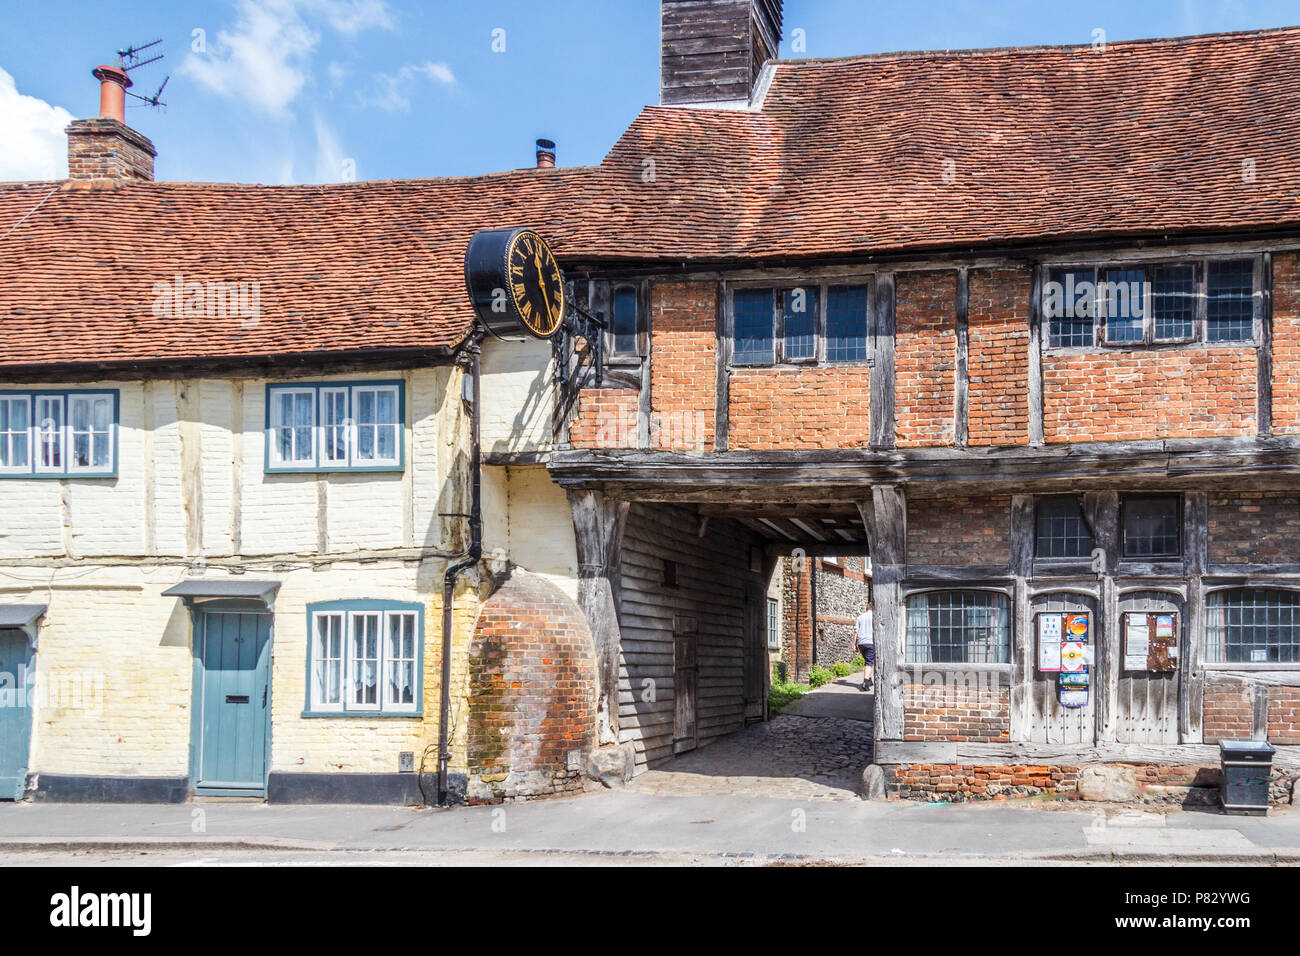 West Wycombe, England-3rd June 2018: Typical old buildings in the town. - Stock Image